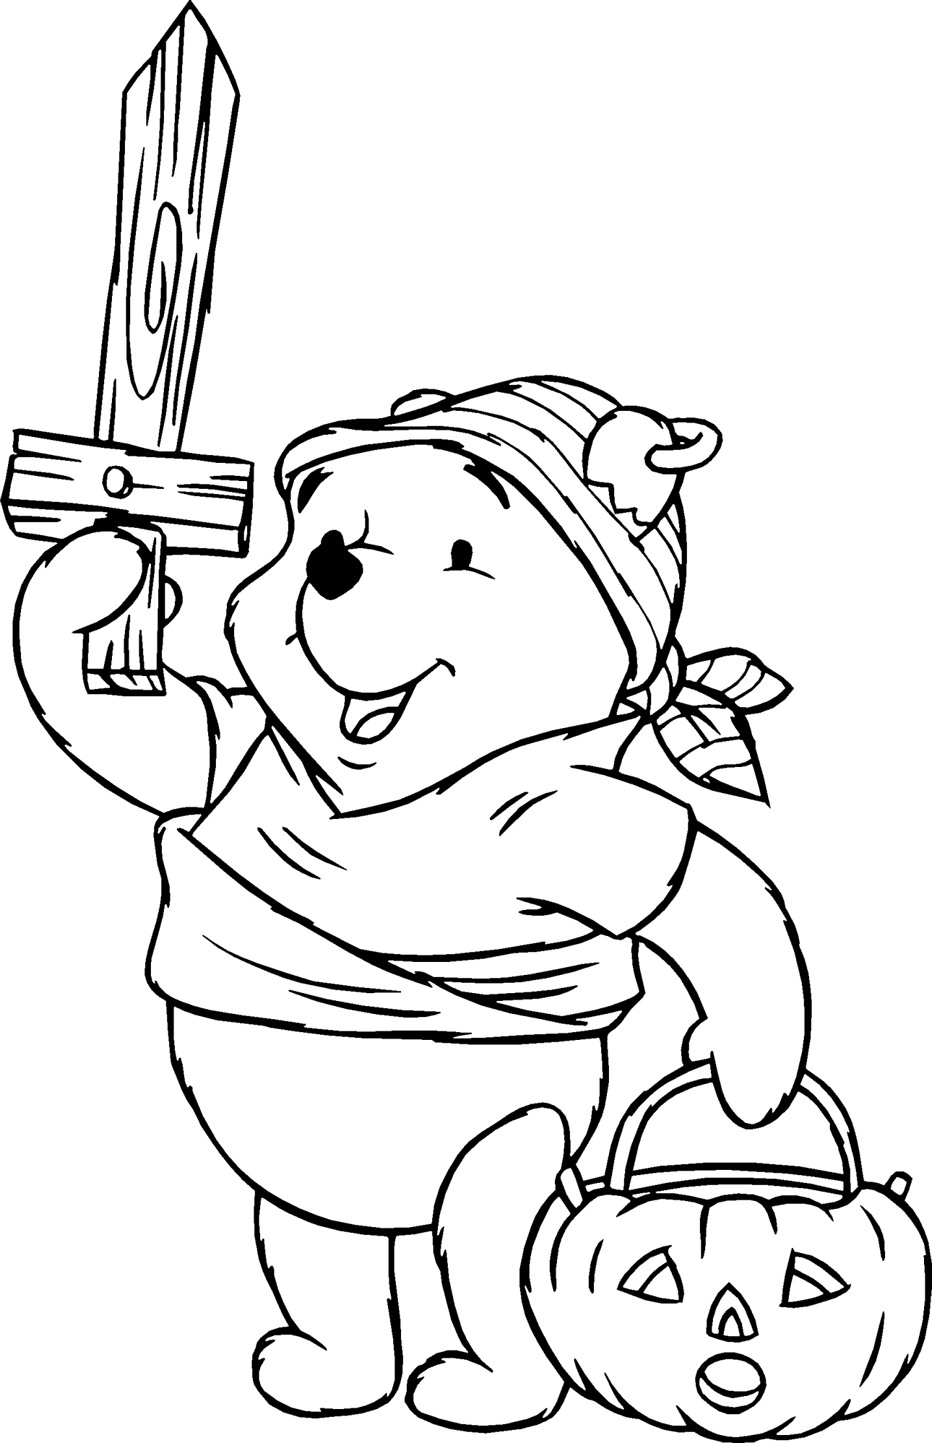 Free Printable Winnie The Pooh Coloring Pages For KidsTinkerbell Halloween Coloring Pages